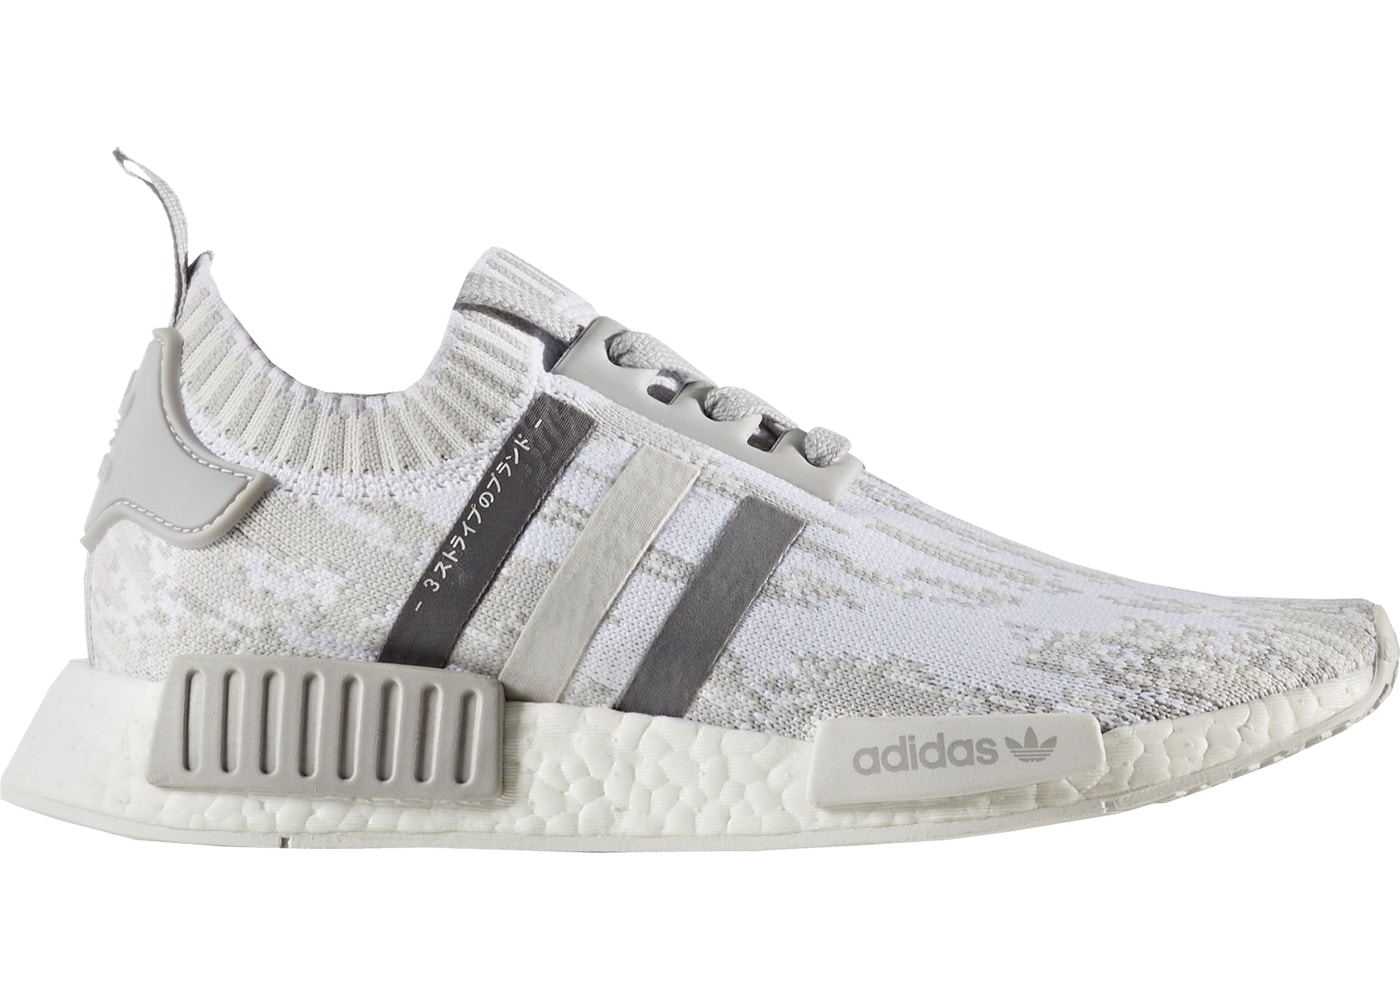 new product 76754 56099 adidas NMD R1 Glitch Camo Grey (W)